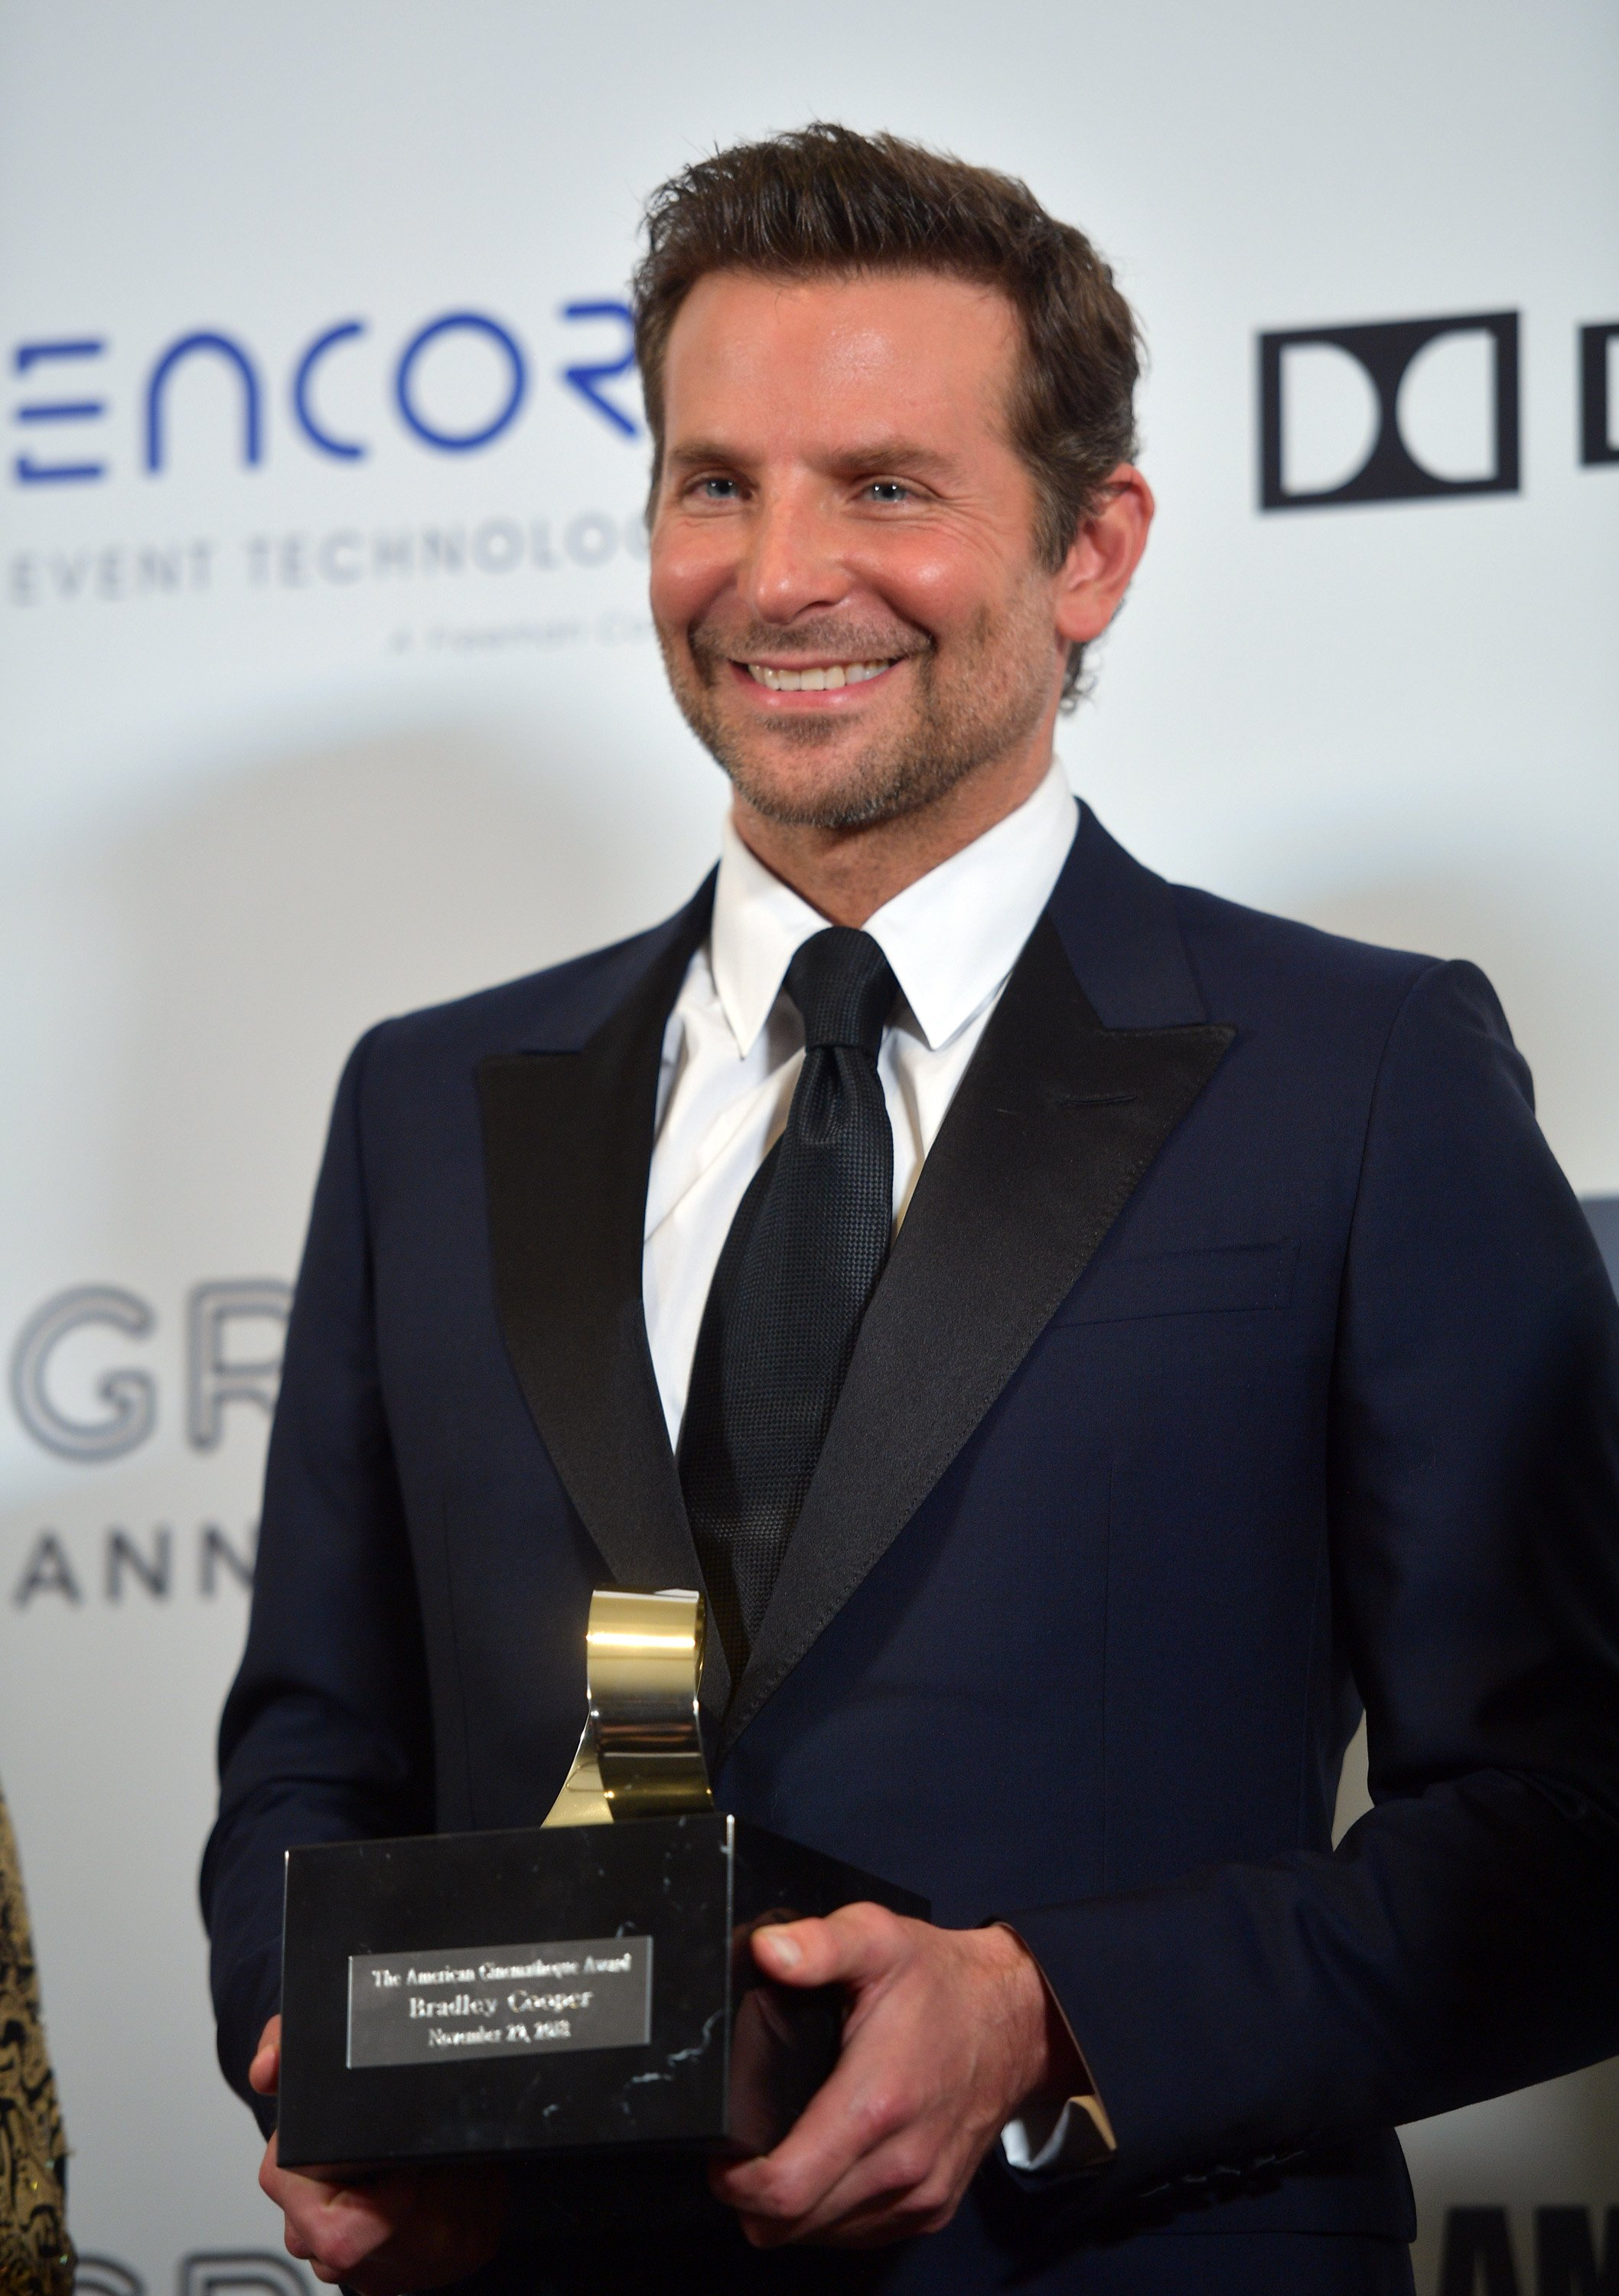 Bradley Cooper at the 32nd American Cinematheque Award Presentation Honoring Bradley Cooper on November 29, 2018 in Beverly Hills, California. | Photo: Getty Images